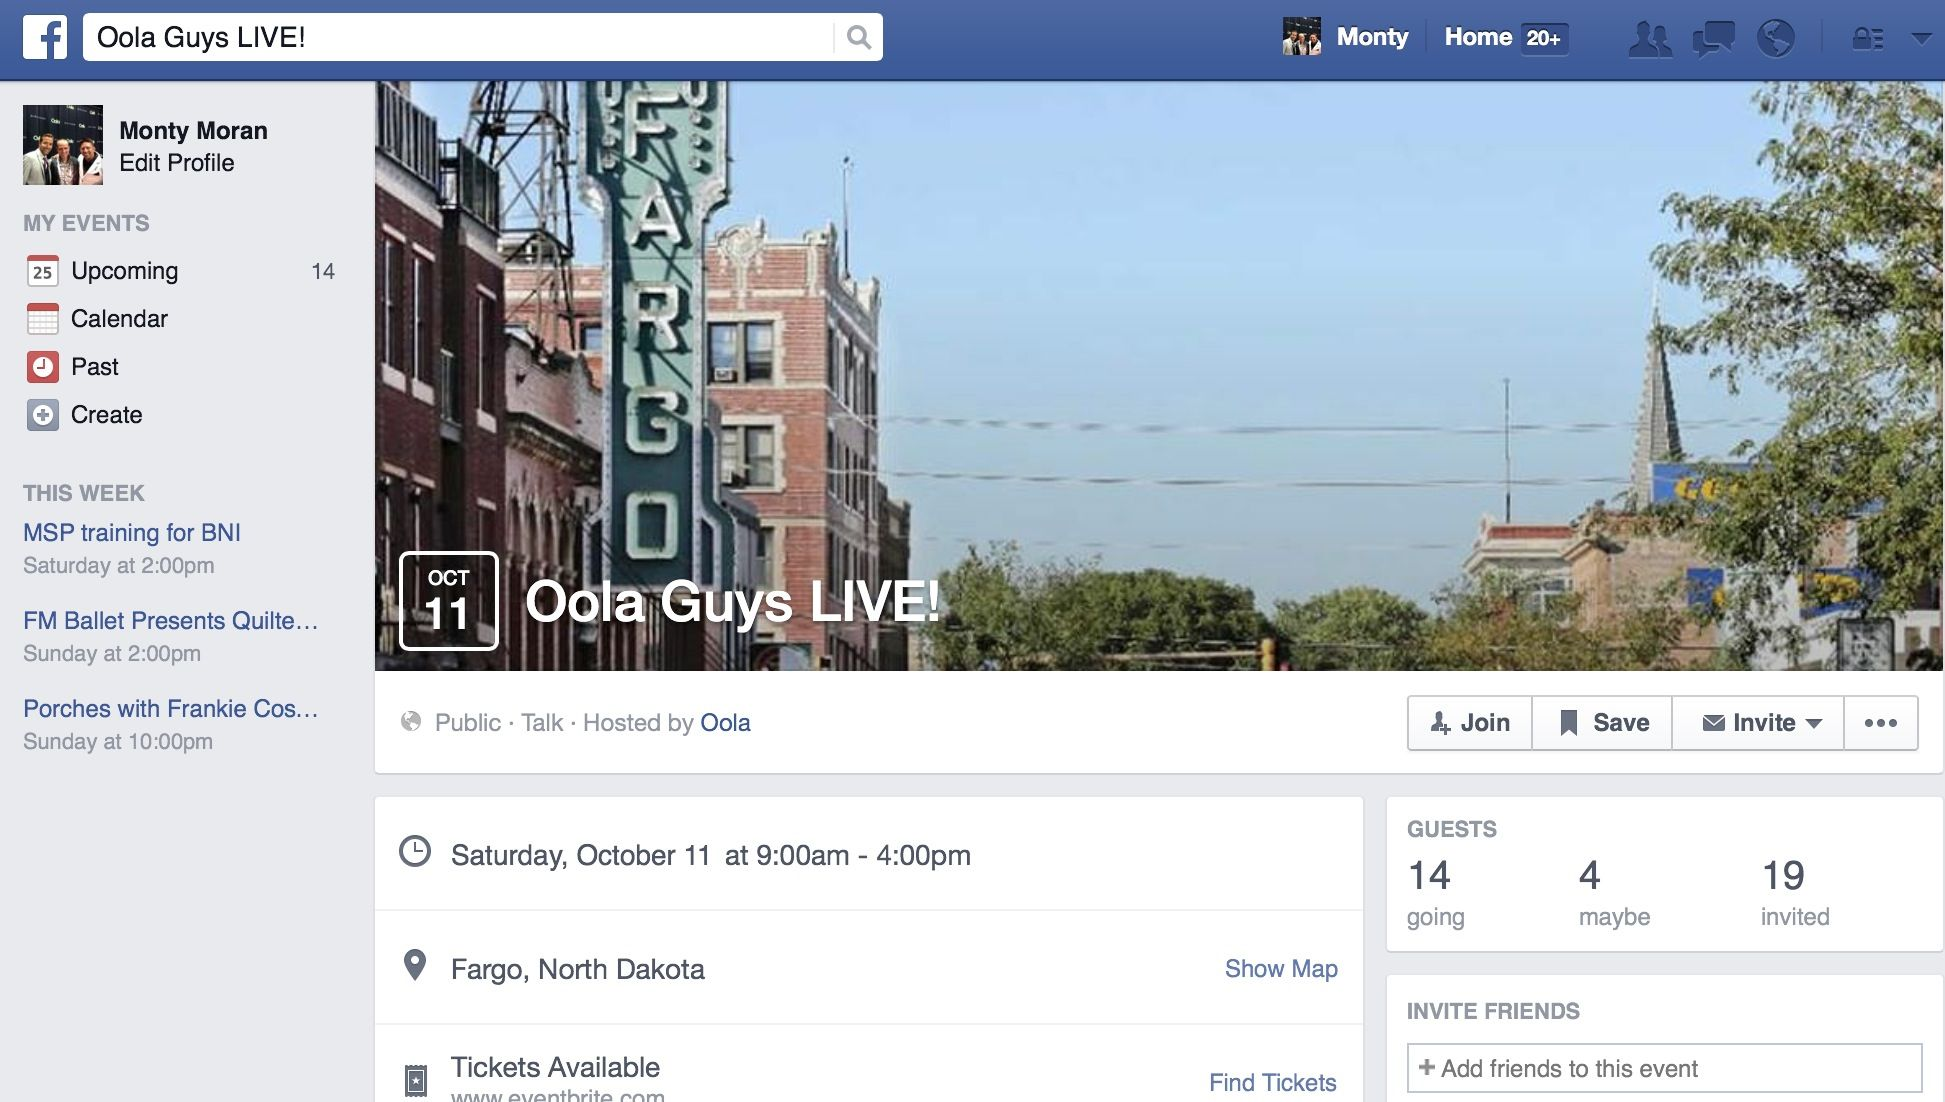 See the #Oola guys live in #OolaFargo at the Ramada Inn Saturday Oct 11 from 2:30-4pm  This is one of the top 10 events in Fargo this Fall #iLoveFago